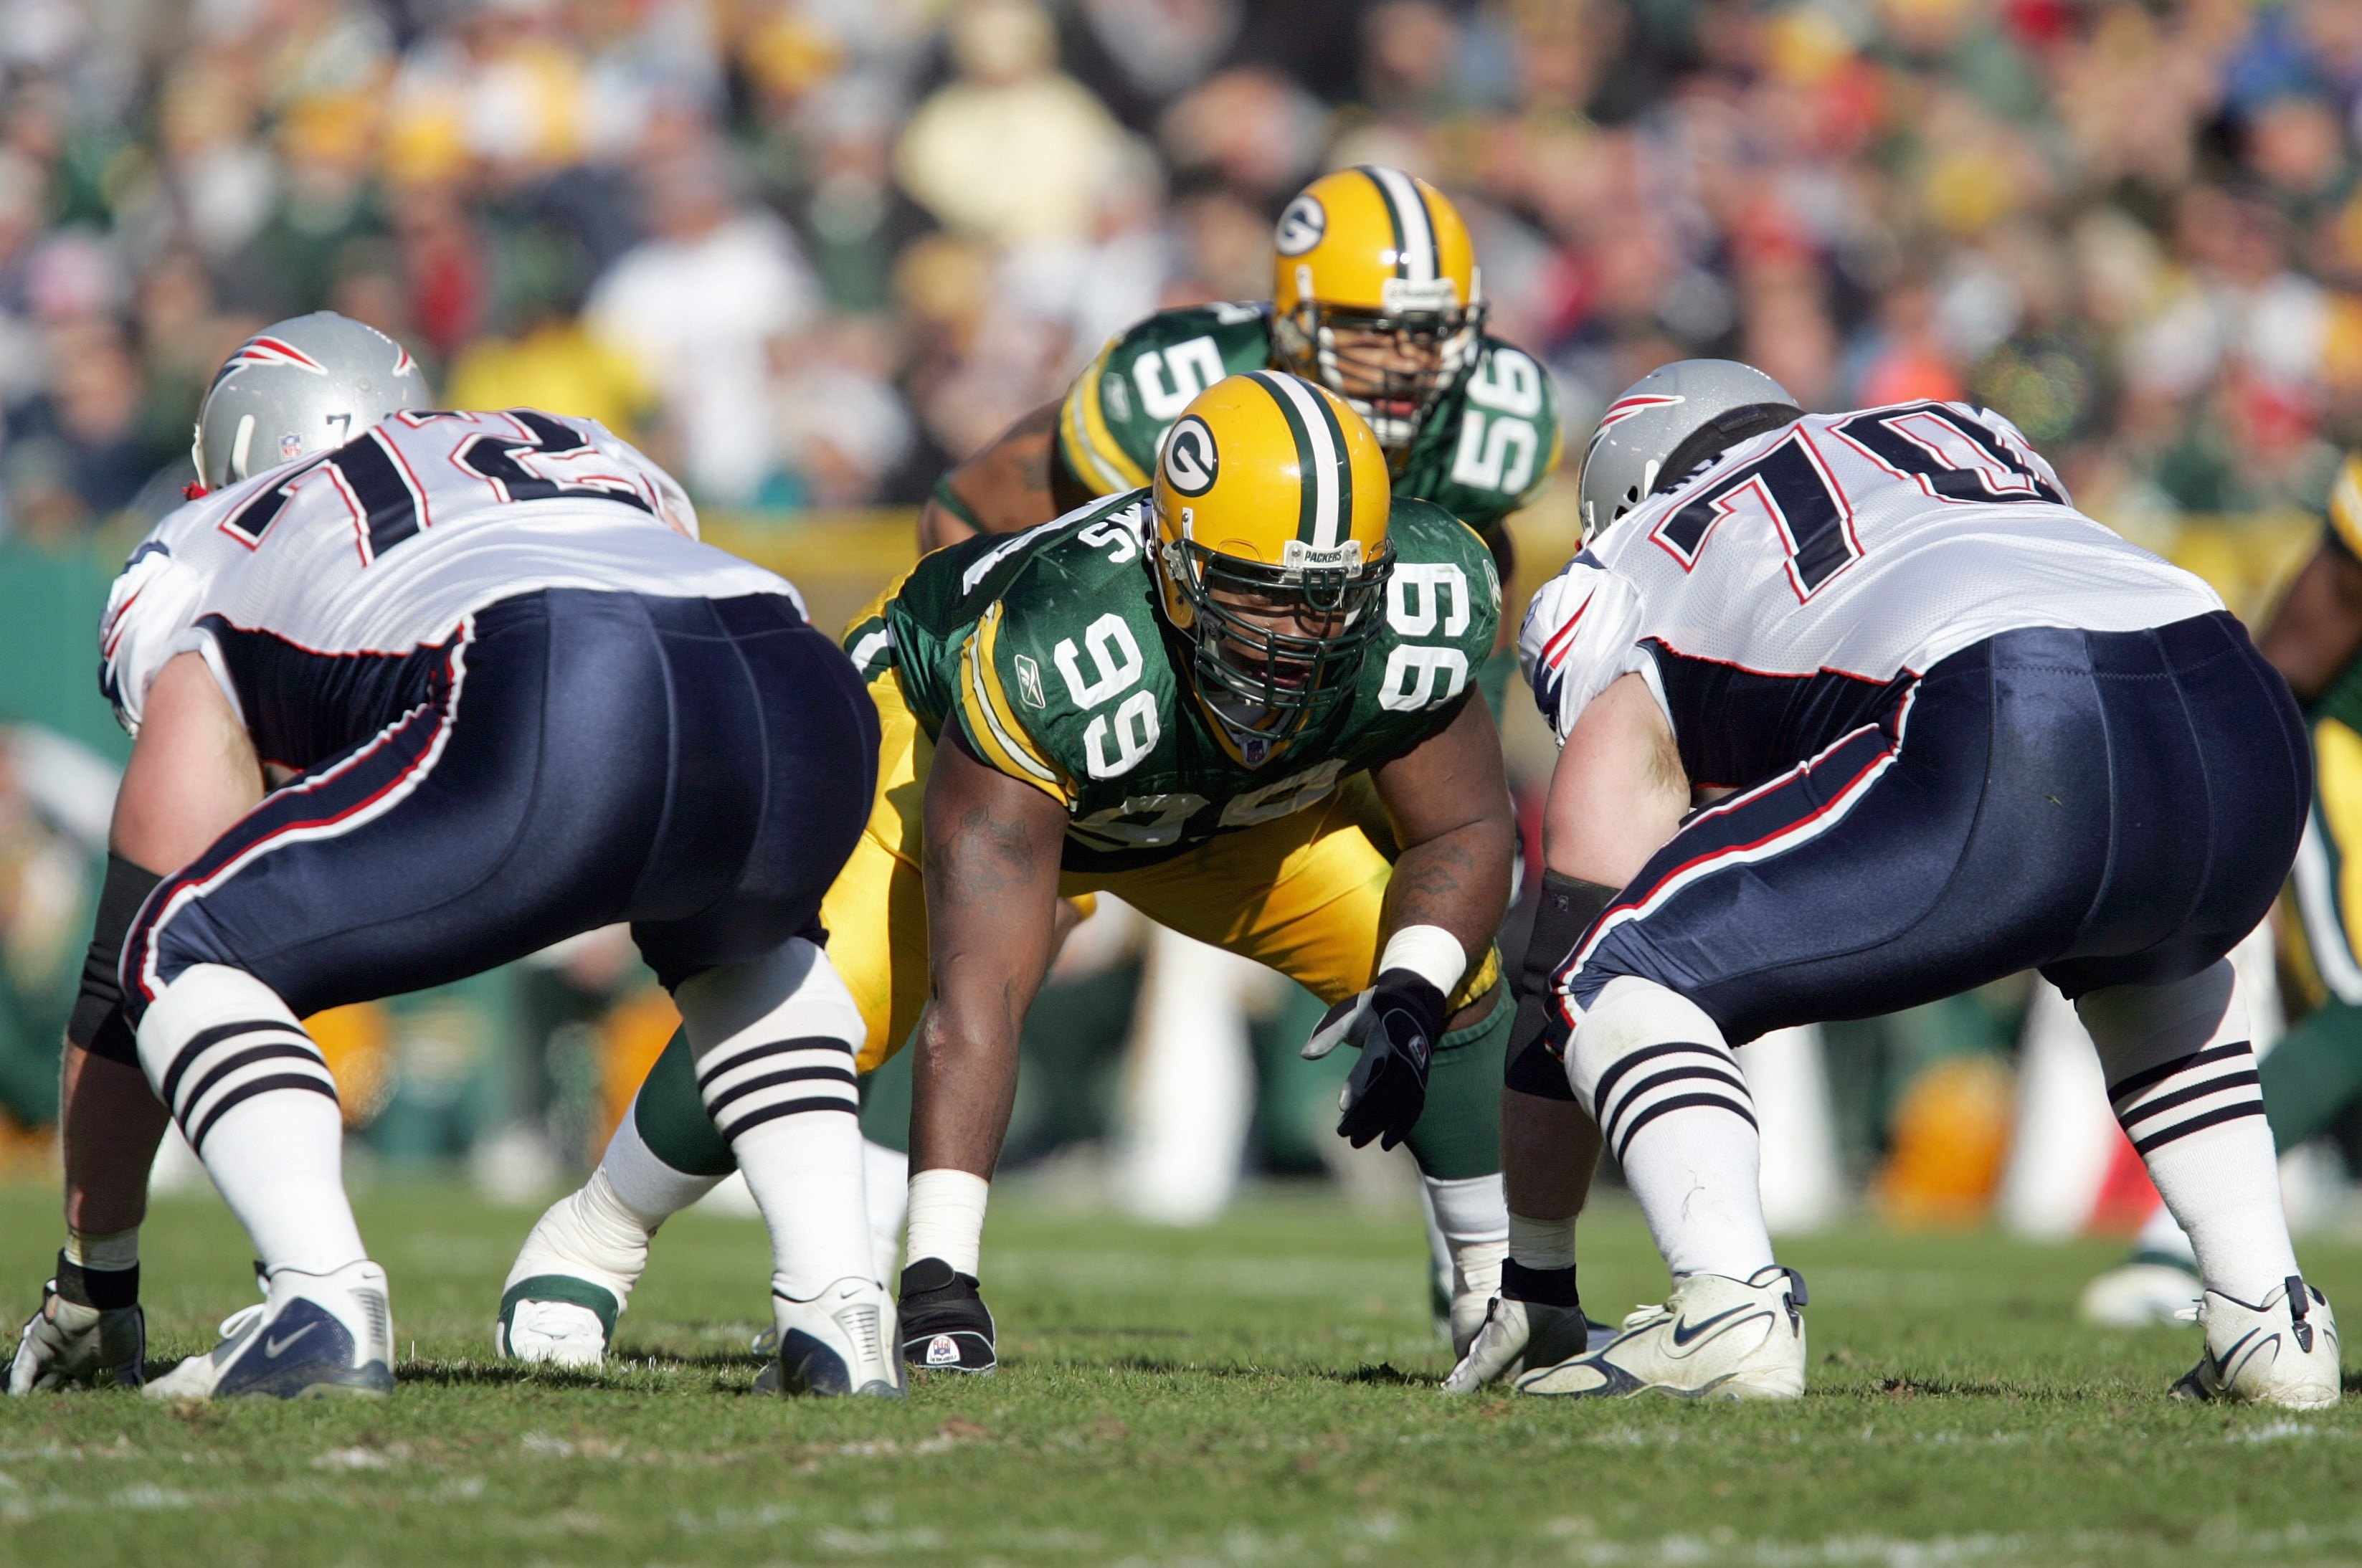 GREEN BAY, WI - NOVEMBER 19:  Corey Williams #99 of the Green Bay Packers gets ready on the line of scrimmage against Matt Light #72 and Logan Mankins #70 of the New England Patriots on November 19, 2006 at Lambeau Field in Green Bay, Wisconsin. The Patri